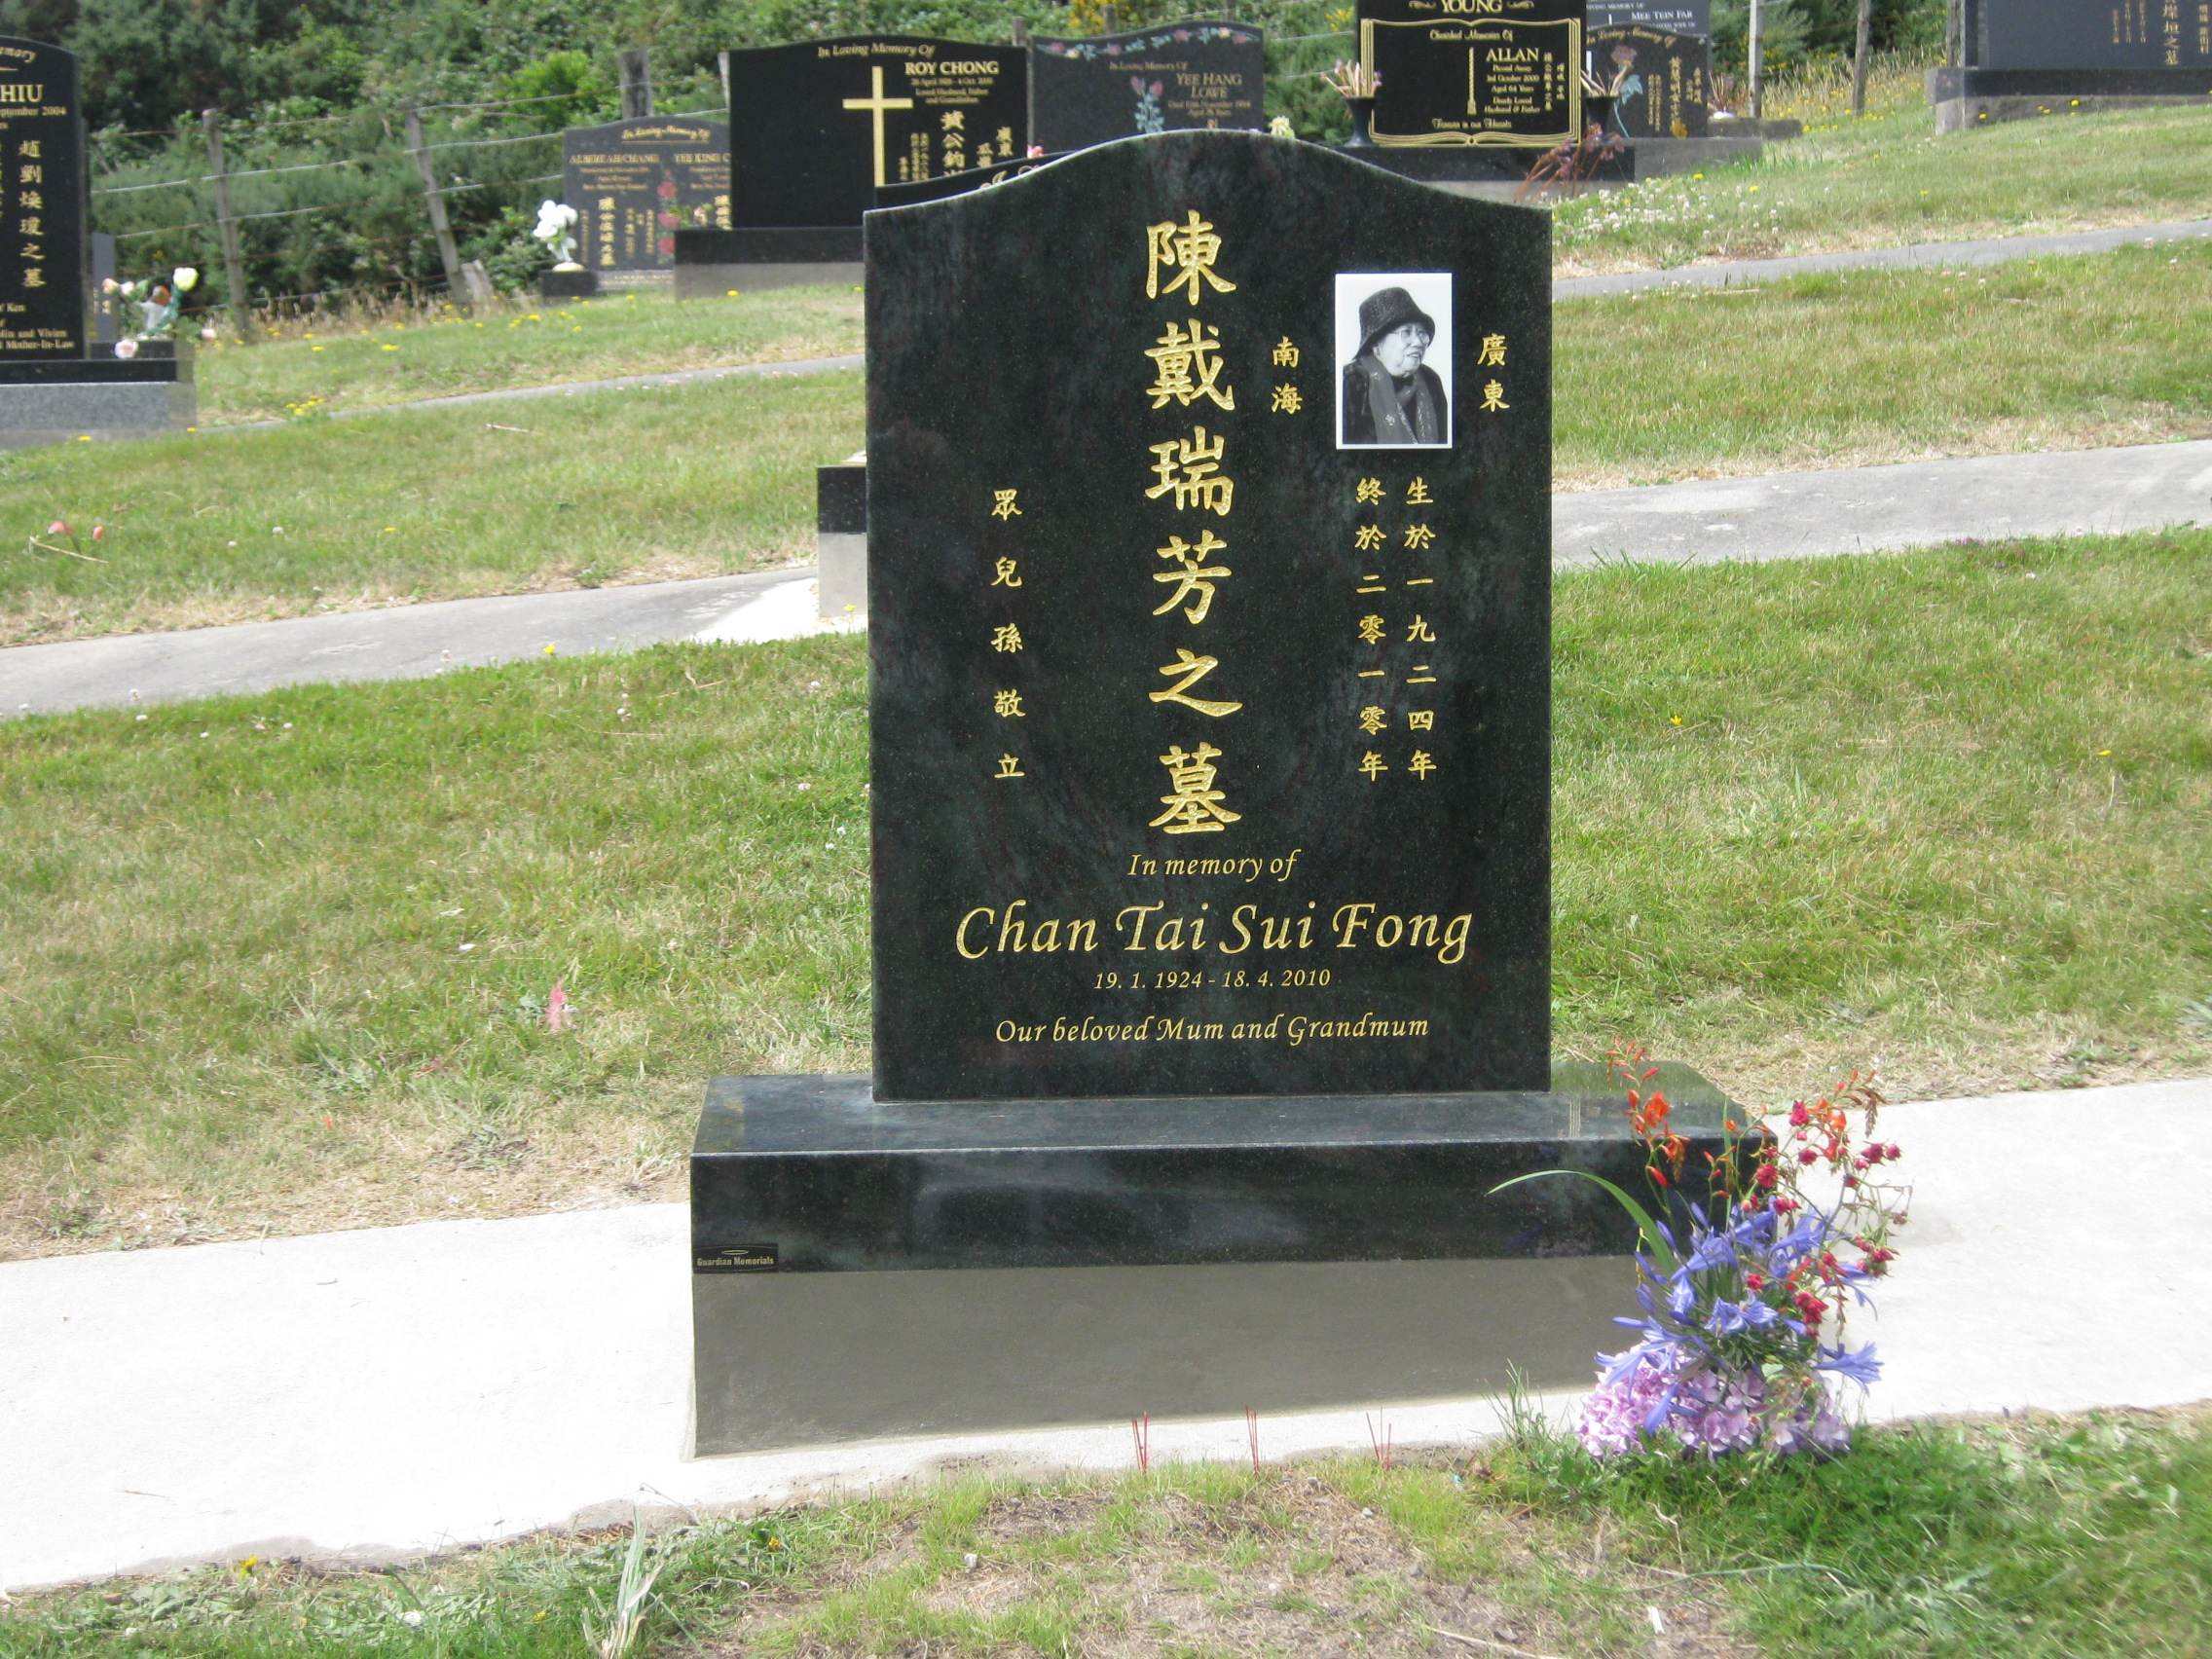 Jade green granite headstone, 23 carat gold Chinese lettering